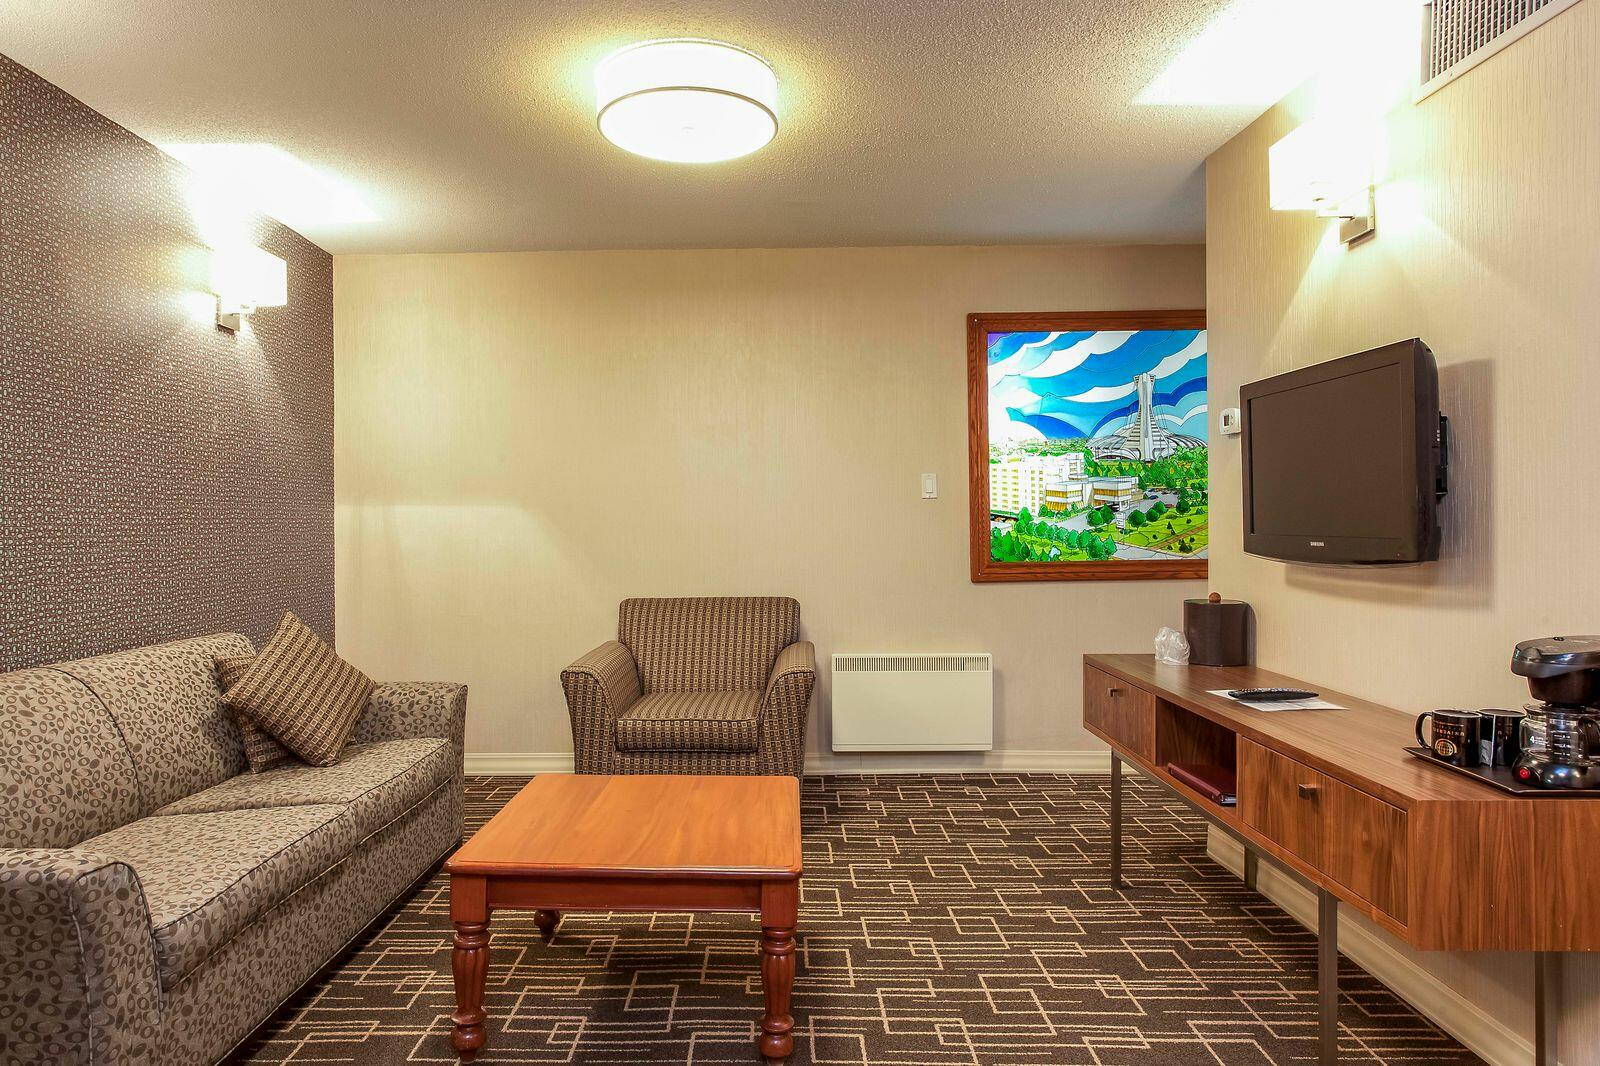 Suite living room with wall mounted TV.